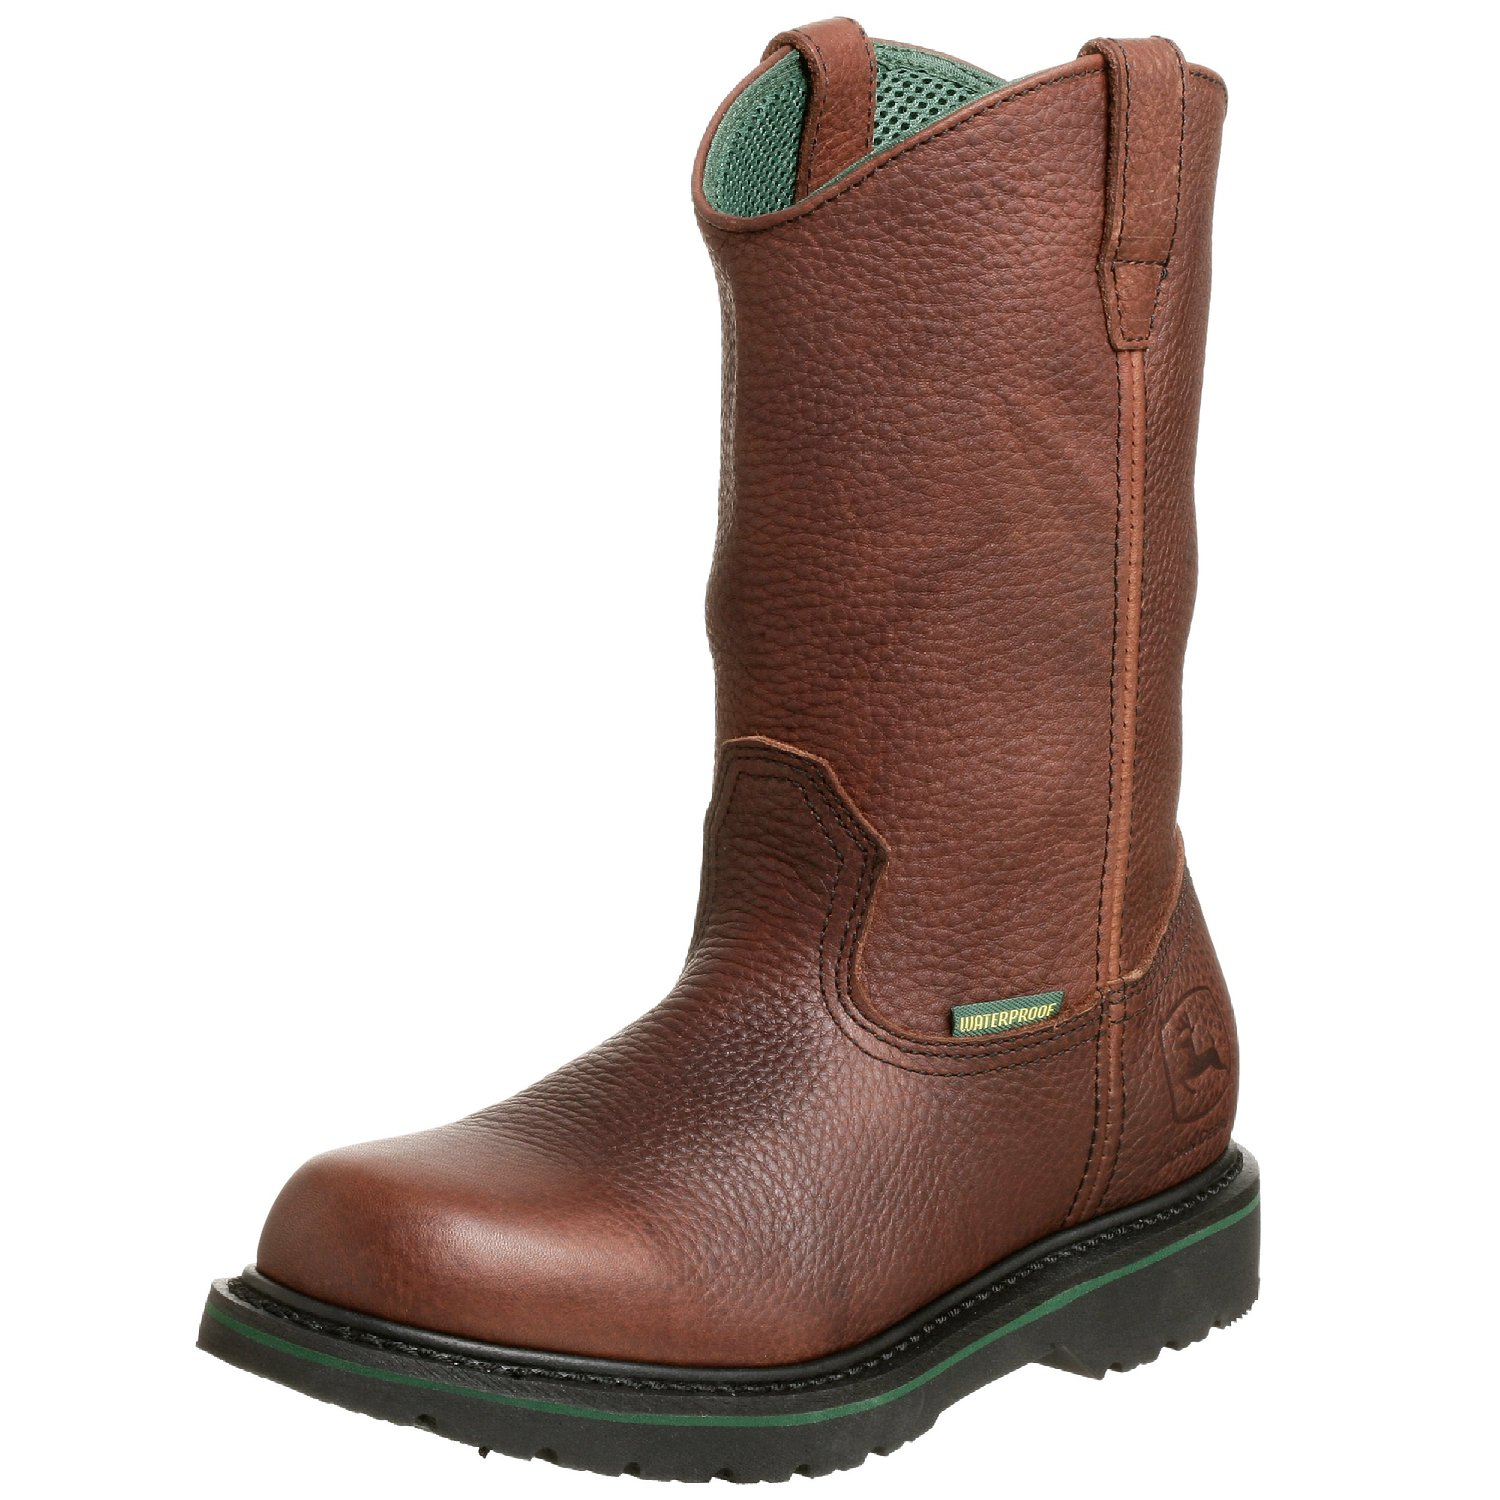 John Deere Men's 10inch Waterproff P Work Boot